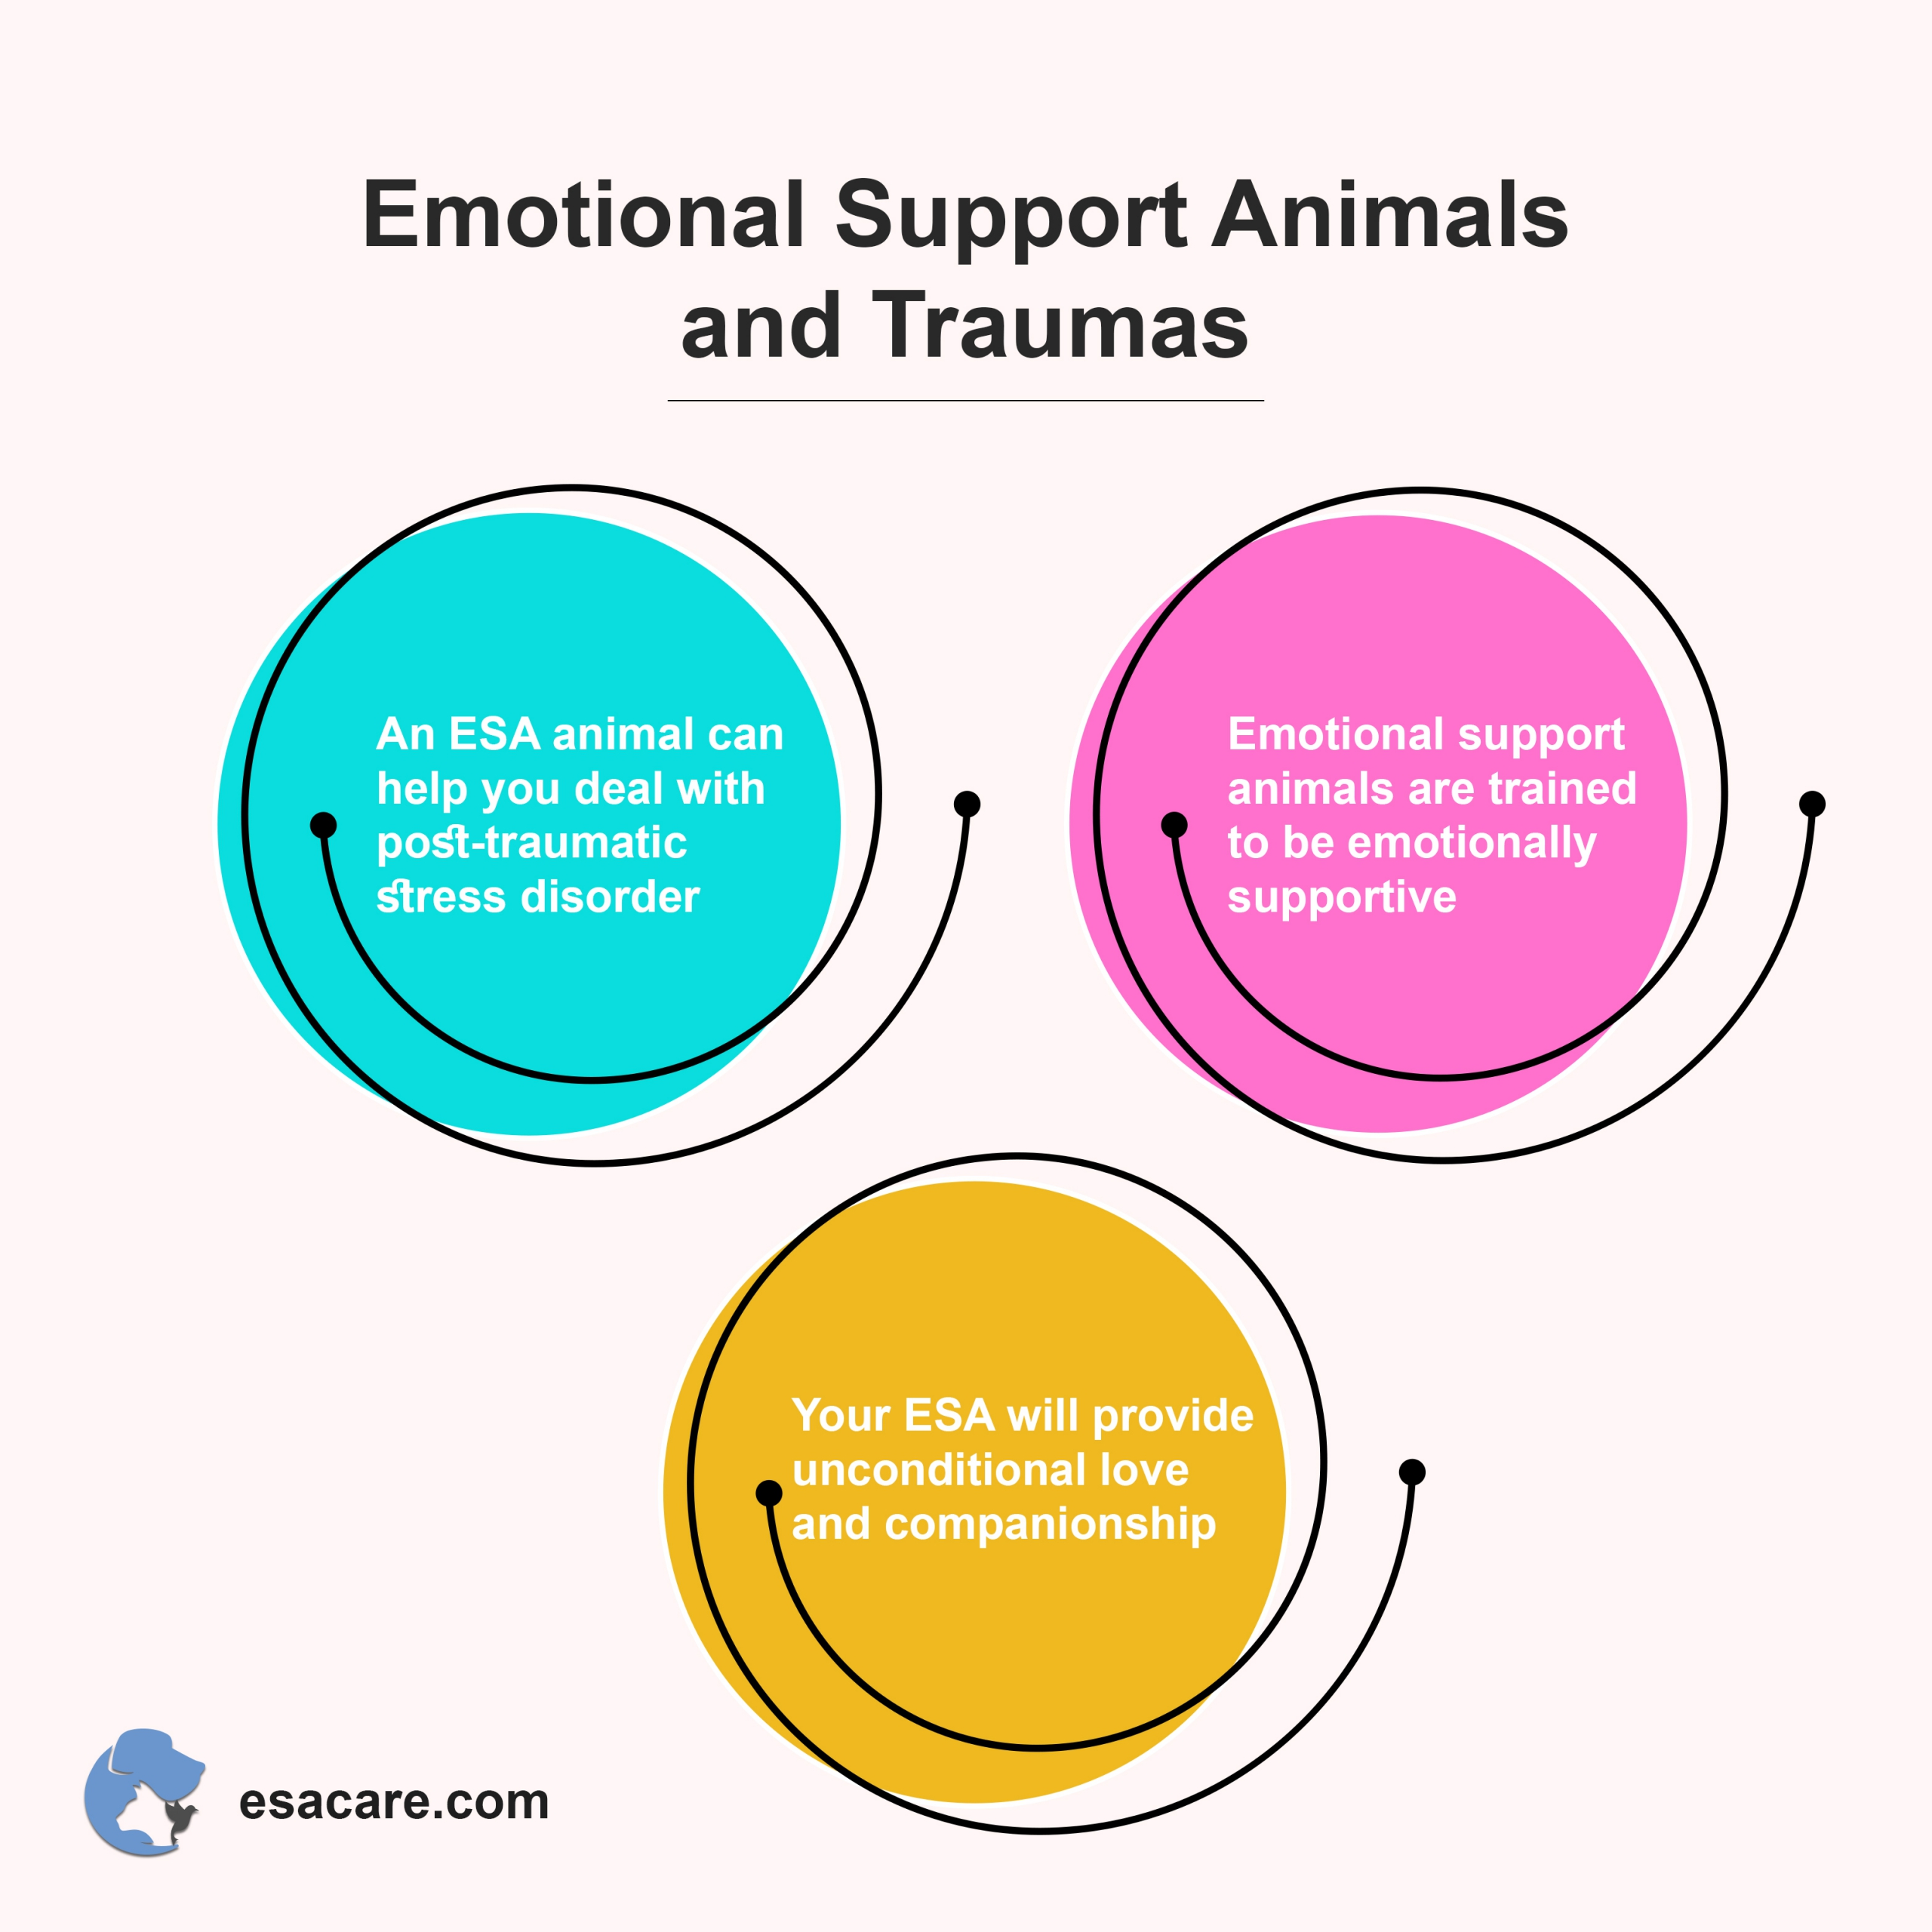 emotional support animals and traumas